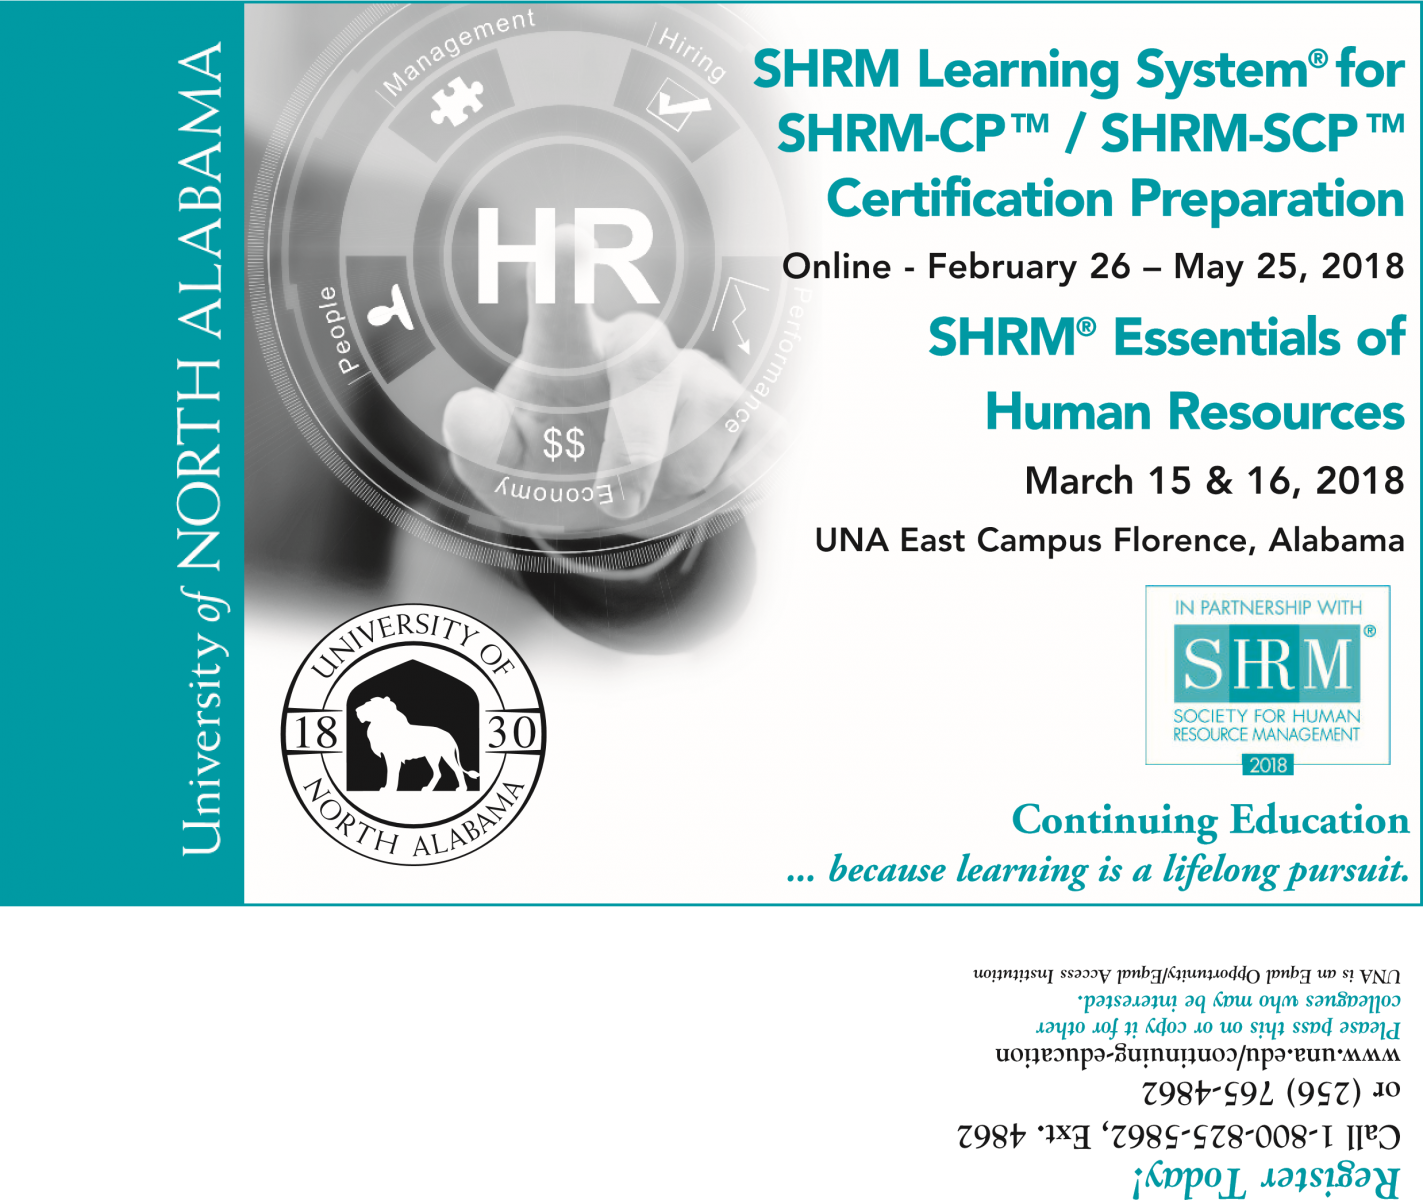 Shrm Learning System Shrm Cpshrm Scp Shoals Chapter Shrm